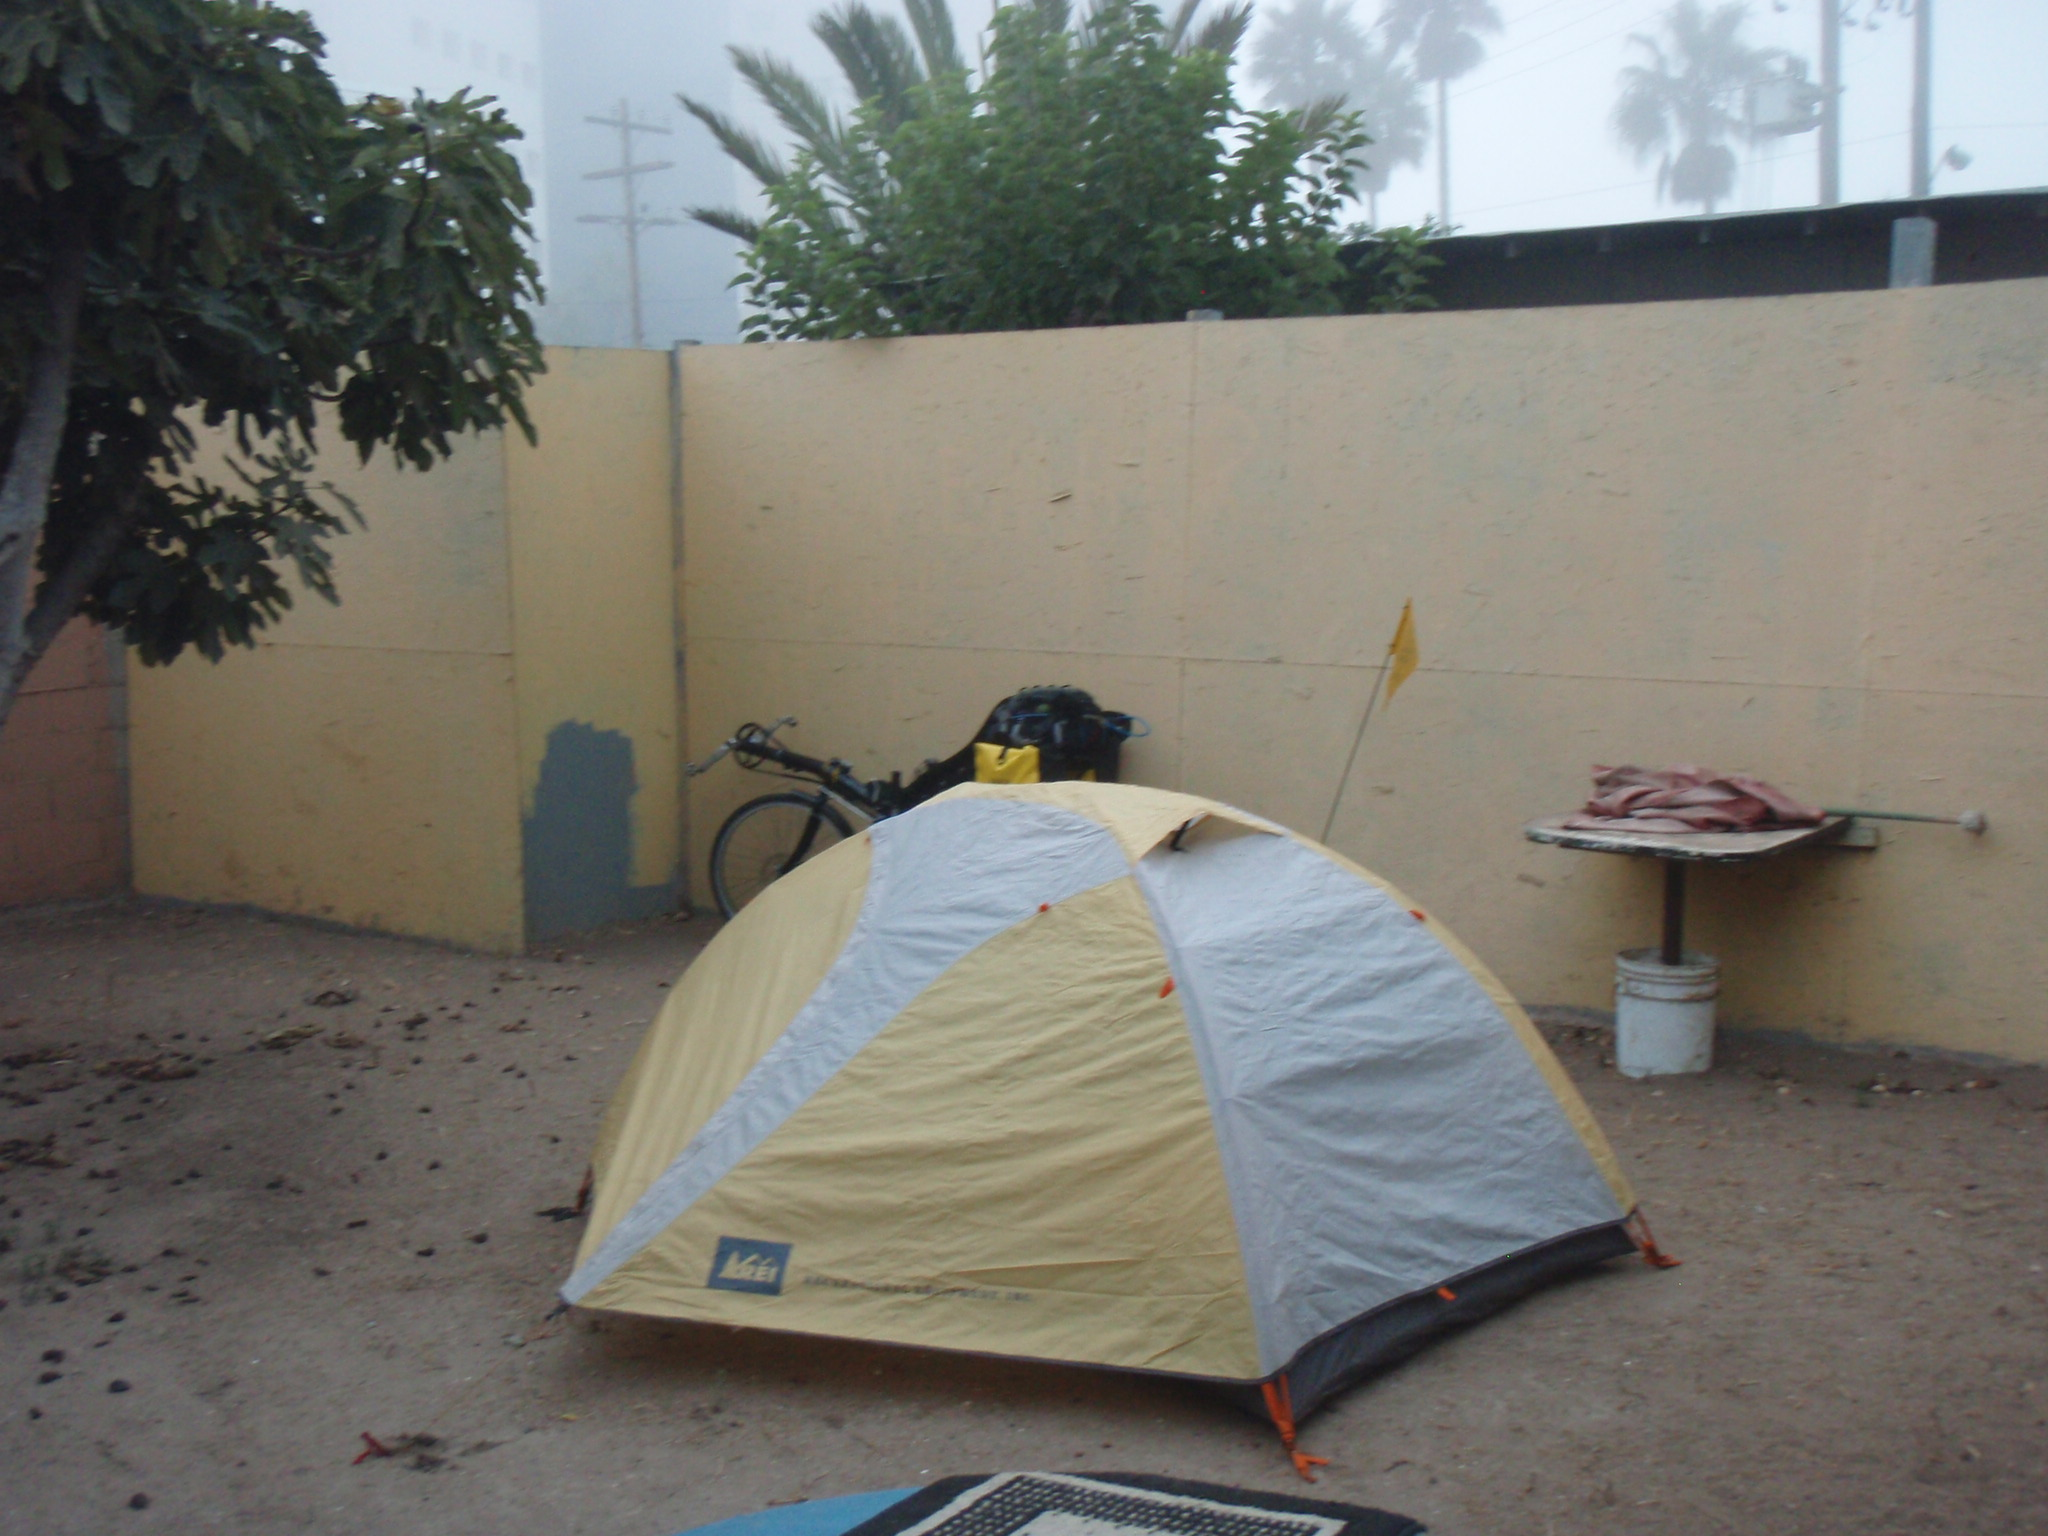 Camping at the hostel in Rosarito